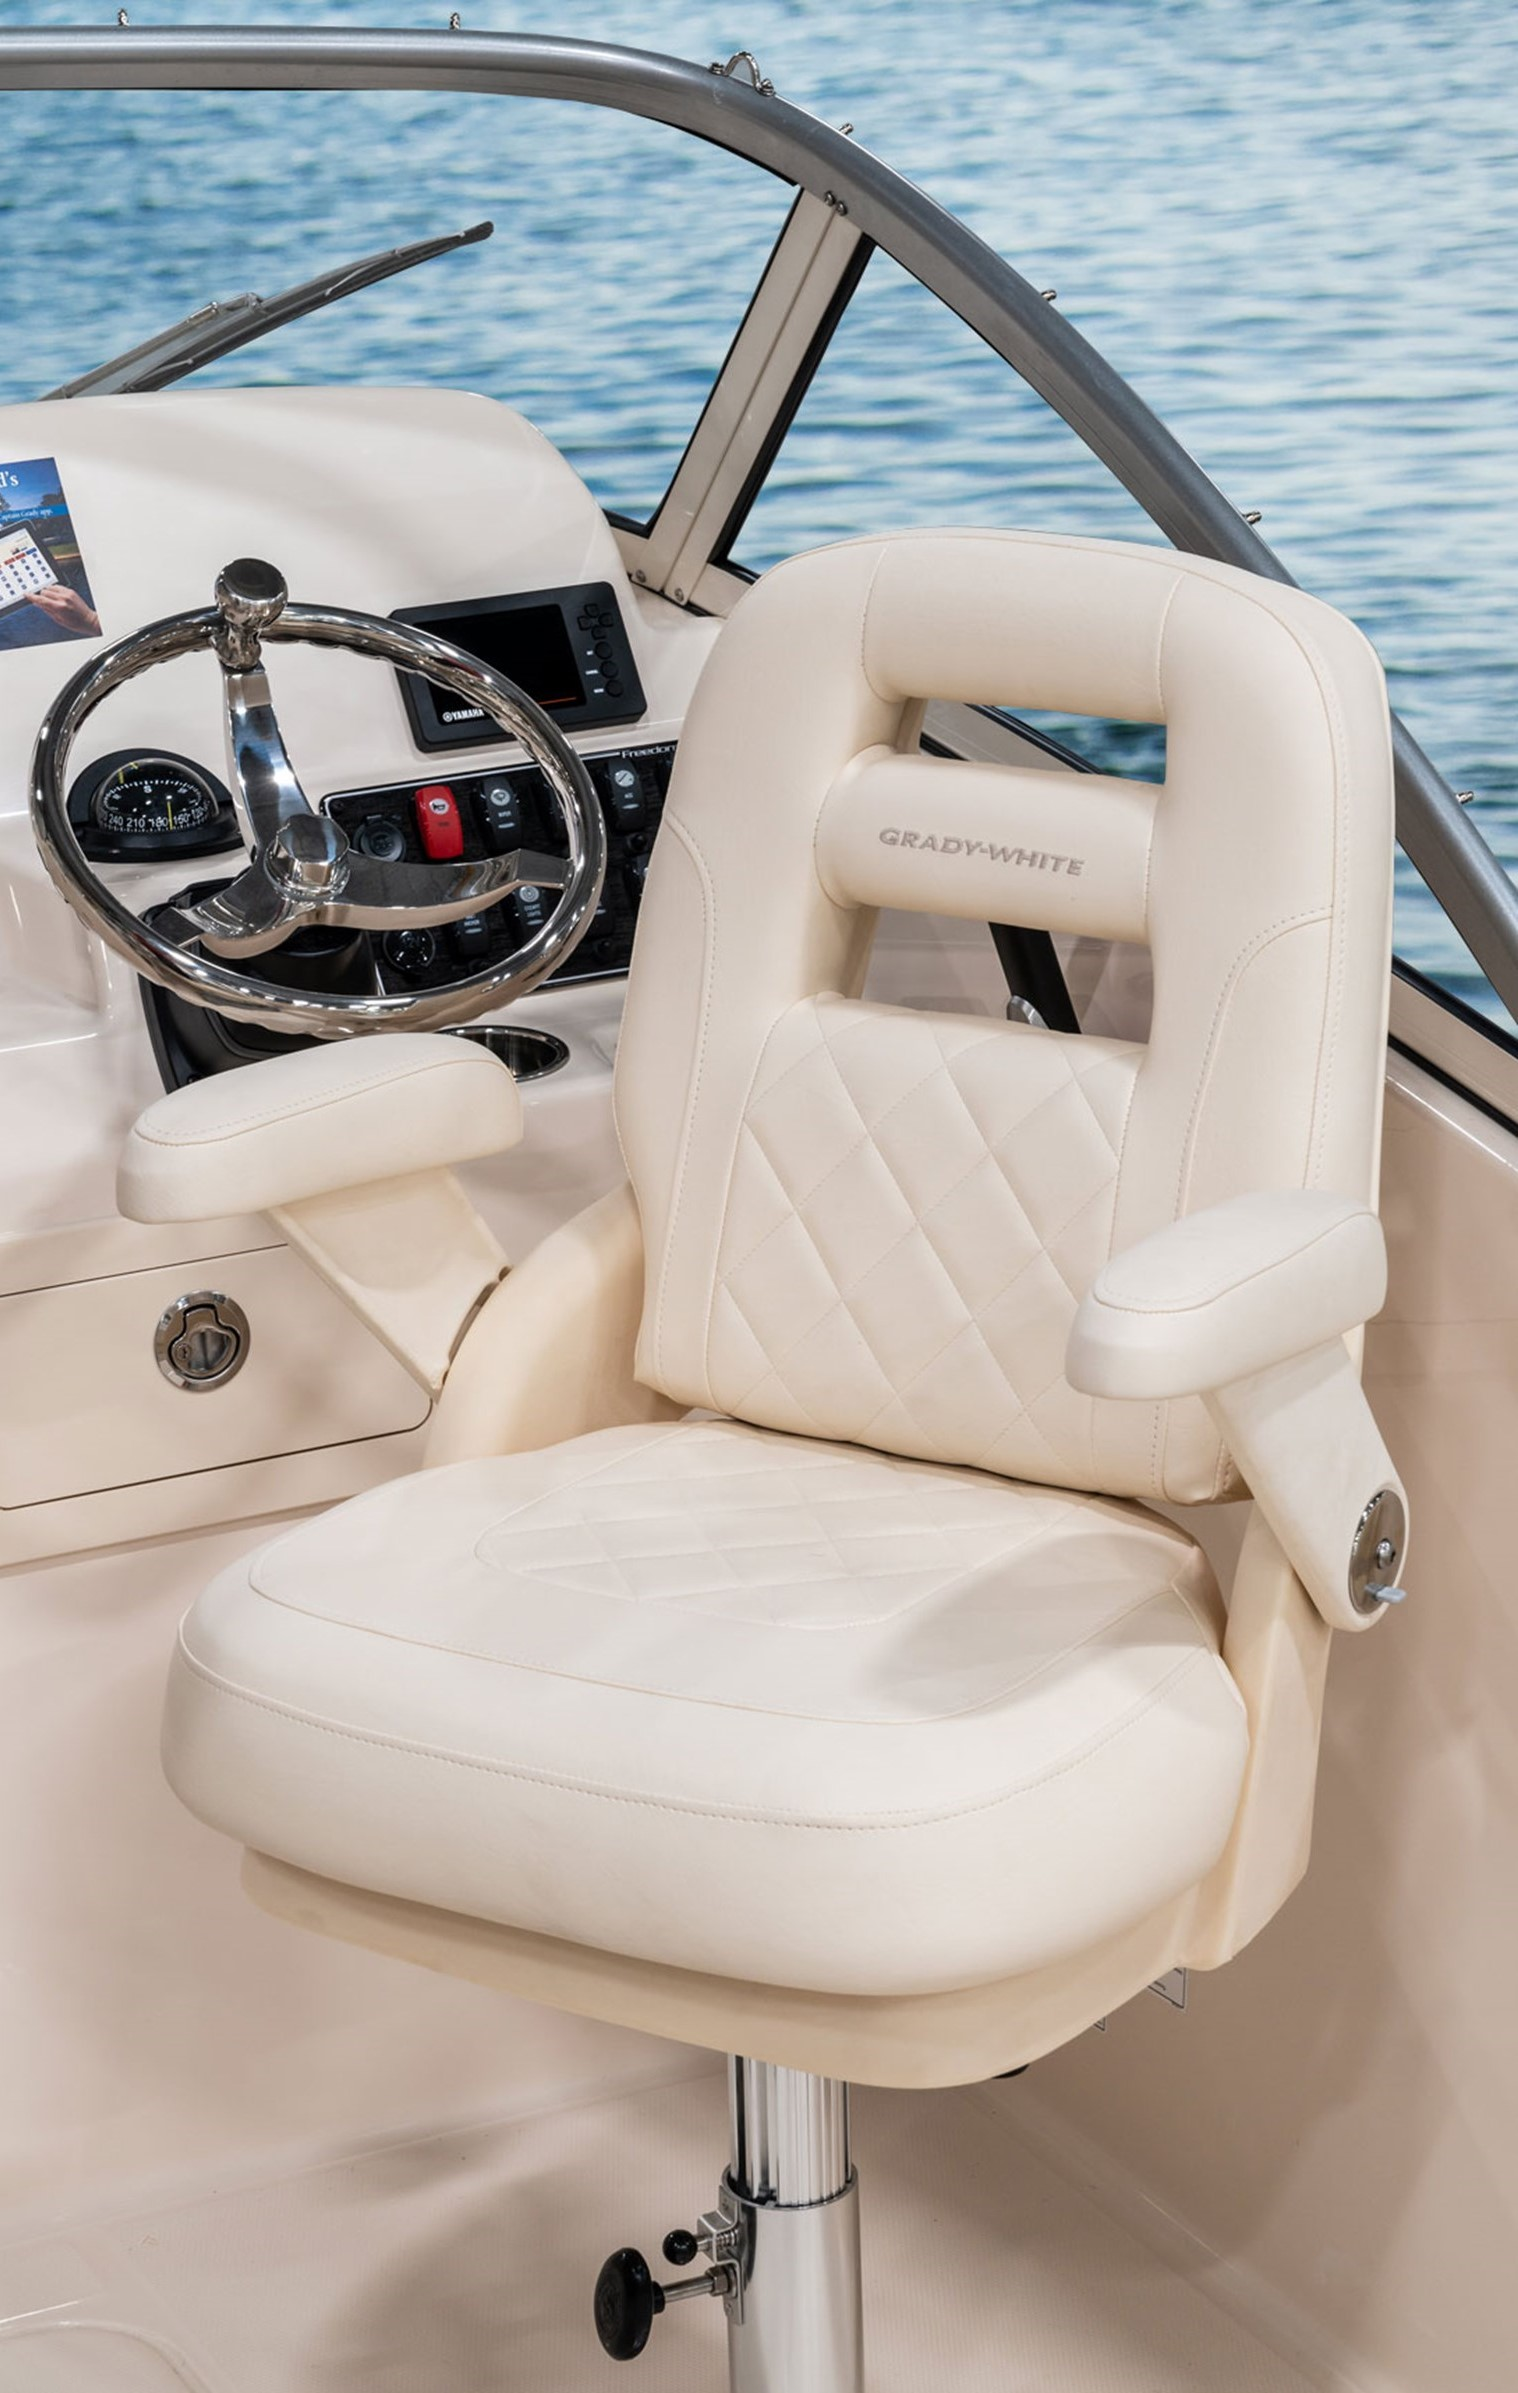 Grady-White Freedom 235 23-foot dual console horizontally and vertically adjustable helm and companion chairs